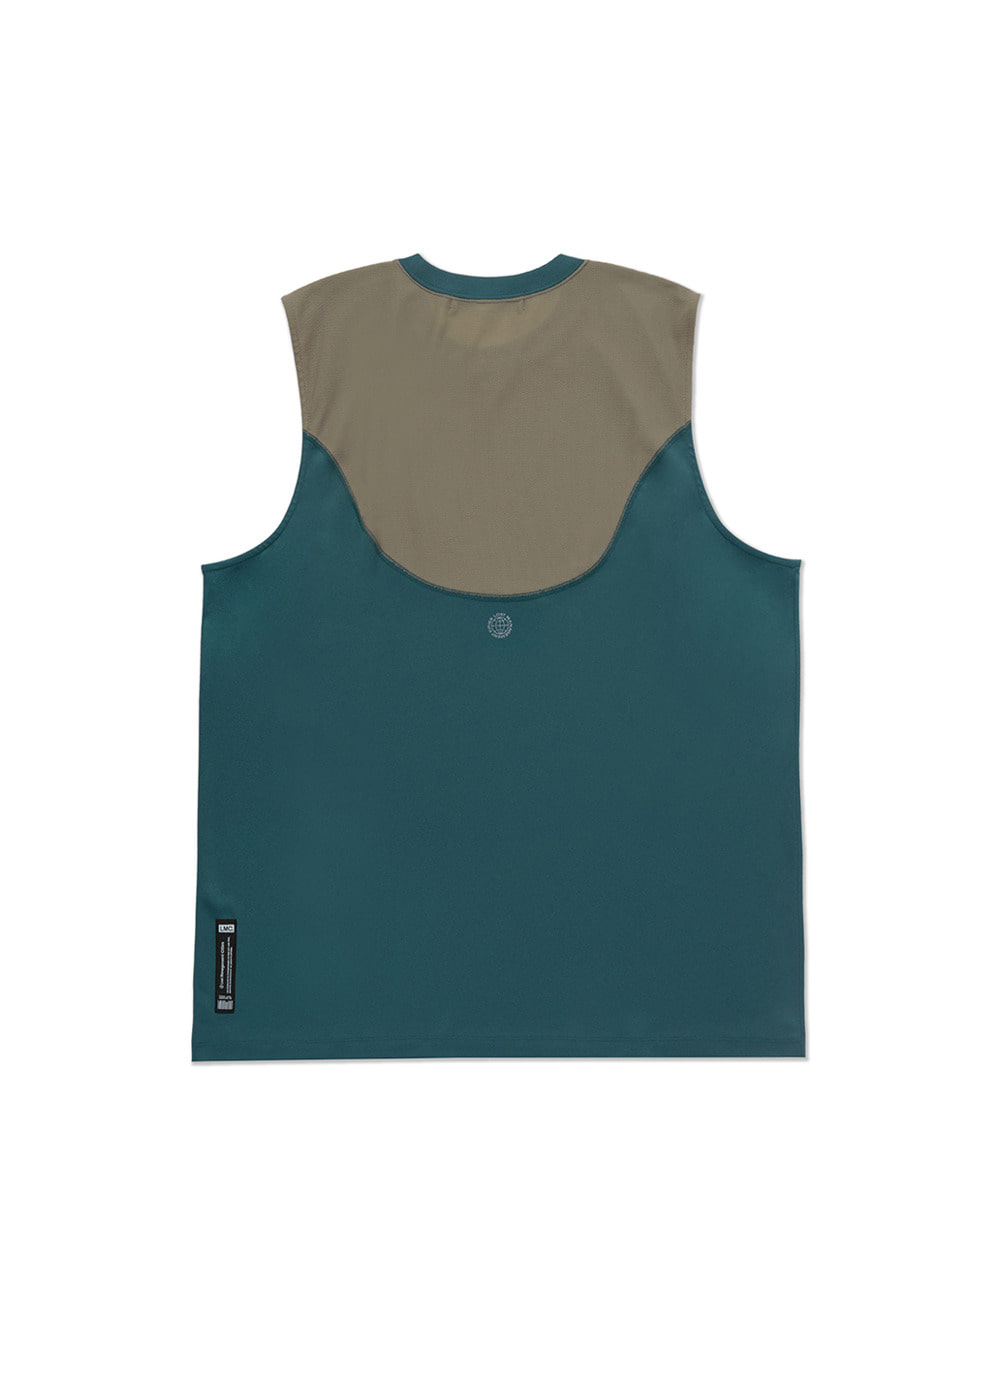 LMC CURVED LINE SLEEVELESS JERSEY teal